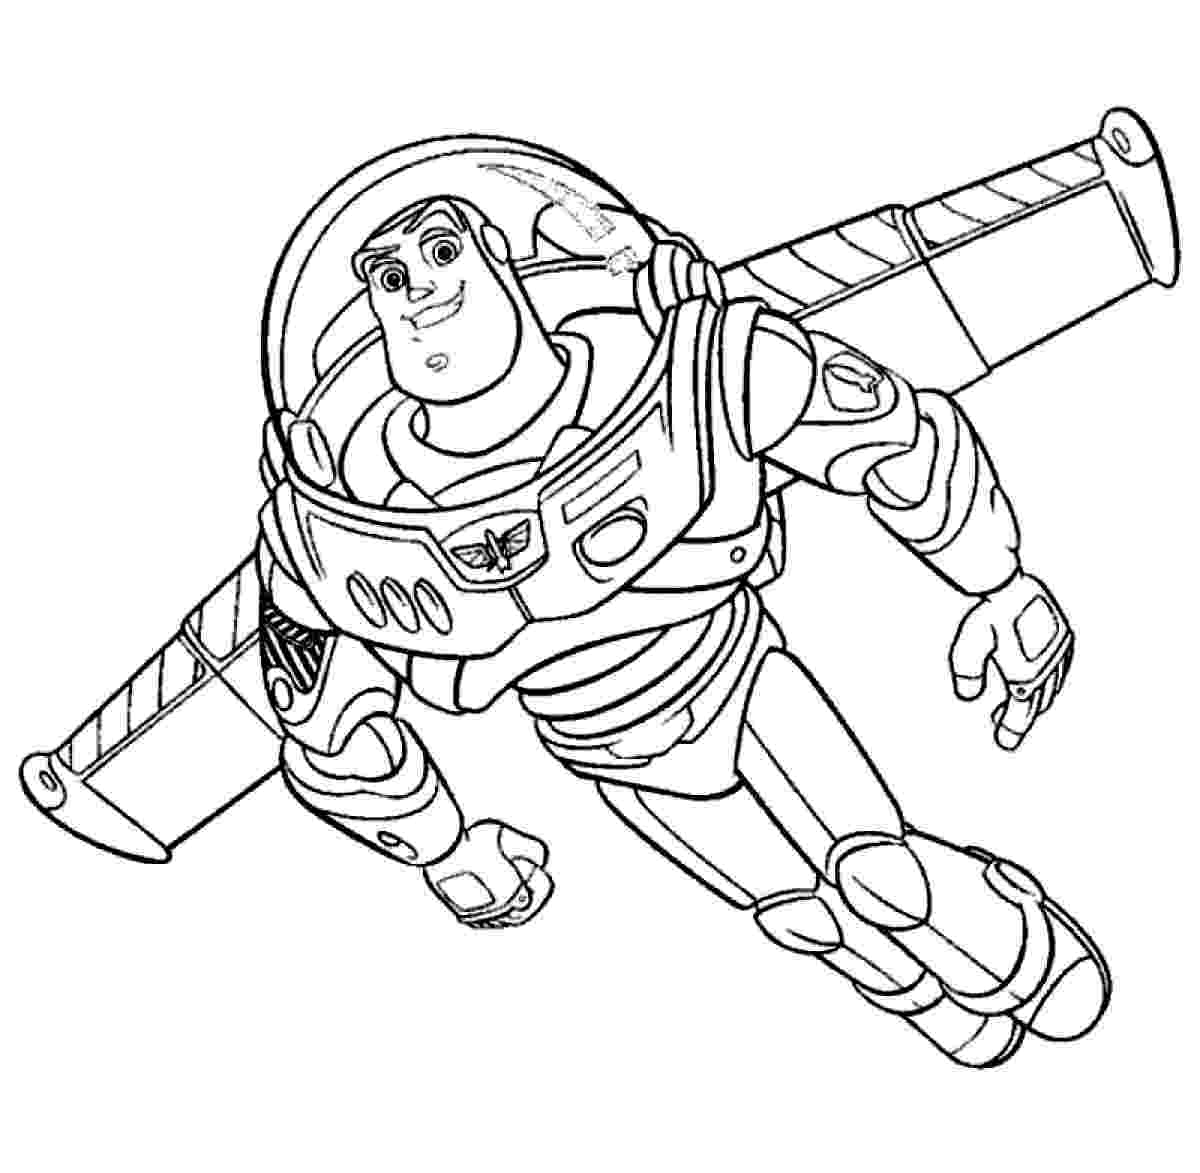 buzz lightyear coloring pages free free printable buzz lightyear coloring pages for kids buzz pages free lightyear coloring